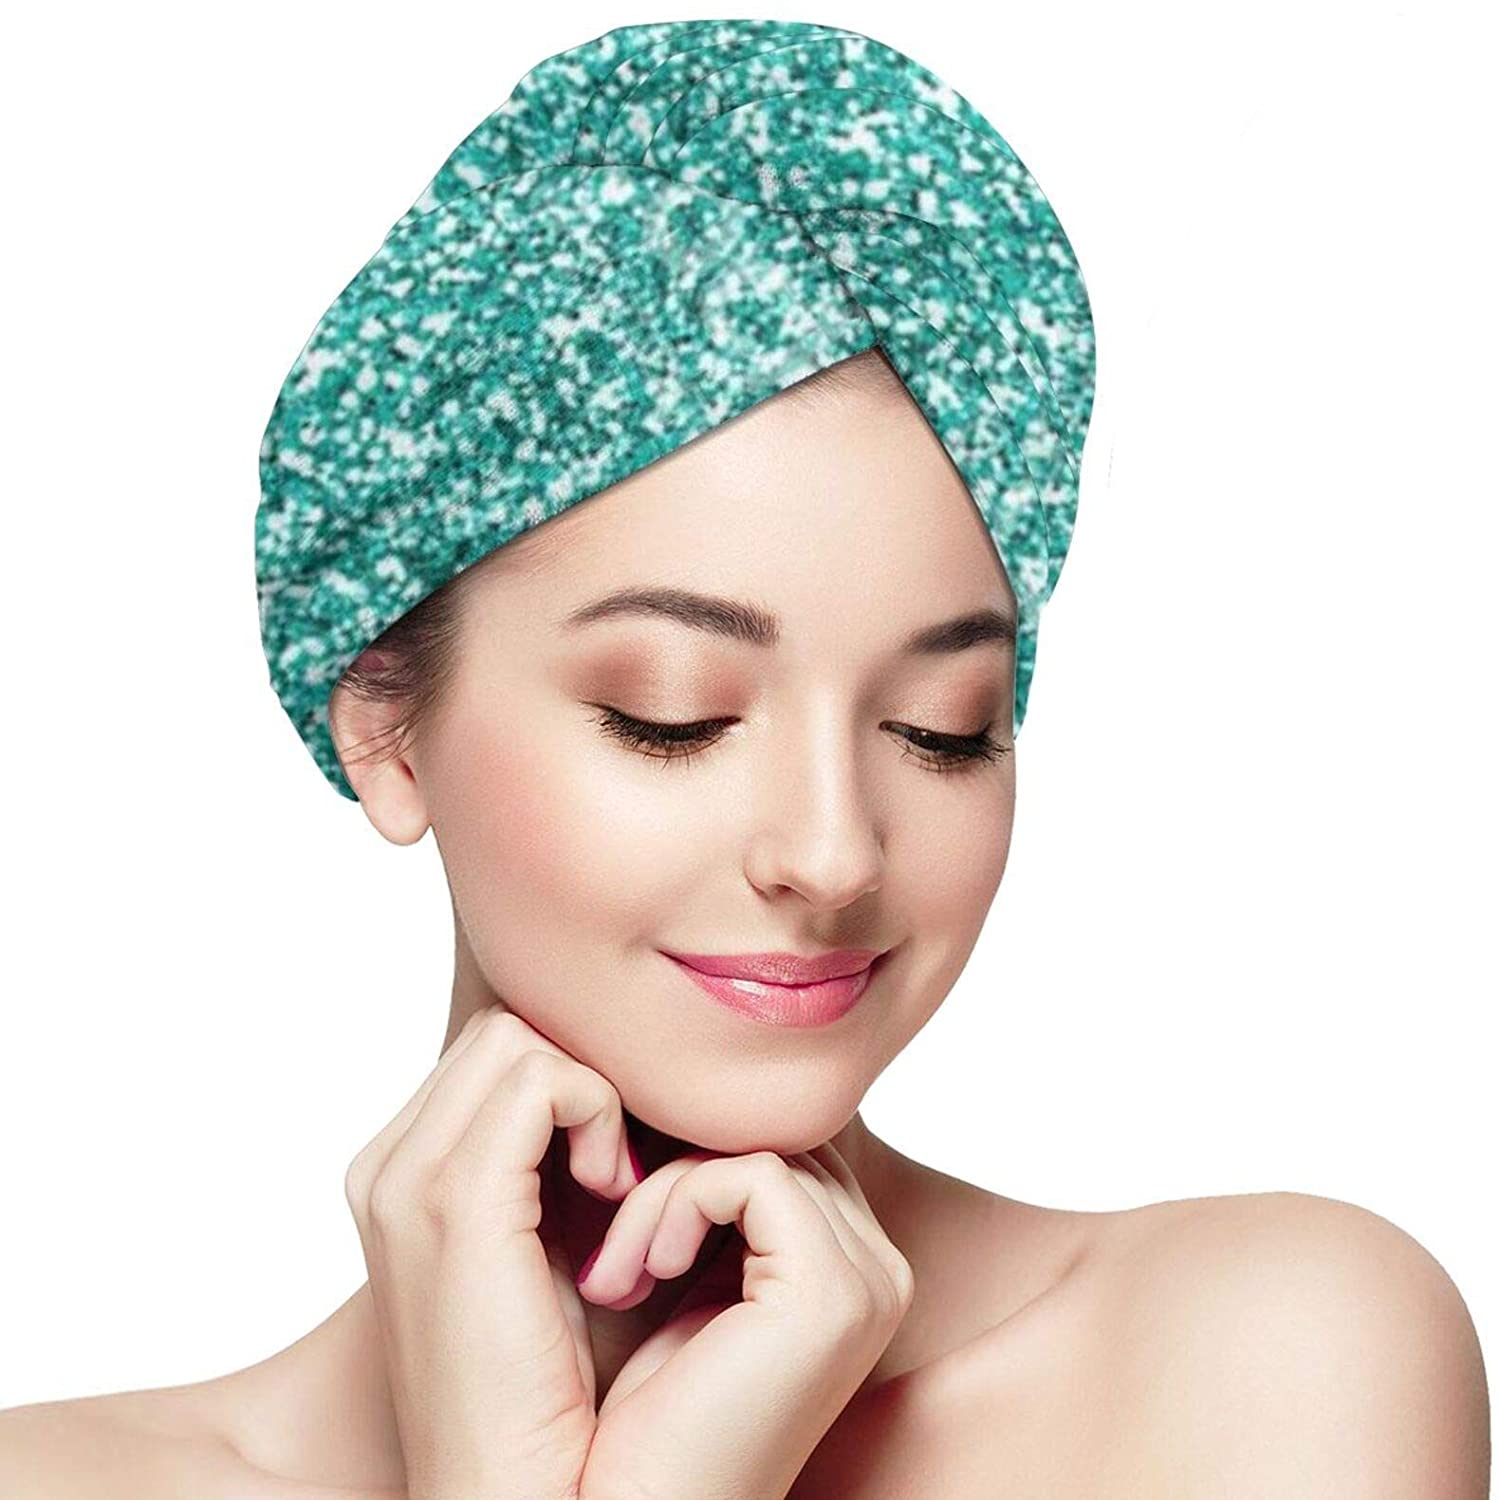 NiYoung Women Girls Dry Hair Hat Hair Towel Wrap Magic Instant Quick Dry Turban Twist with Button for Fine & Delicate Hair, Turquoise Glitter